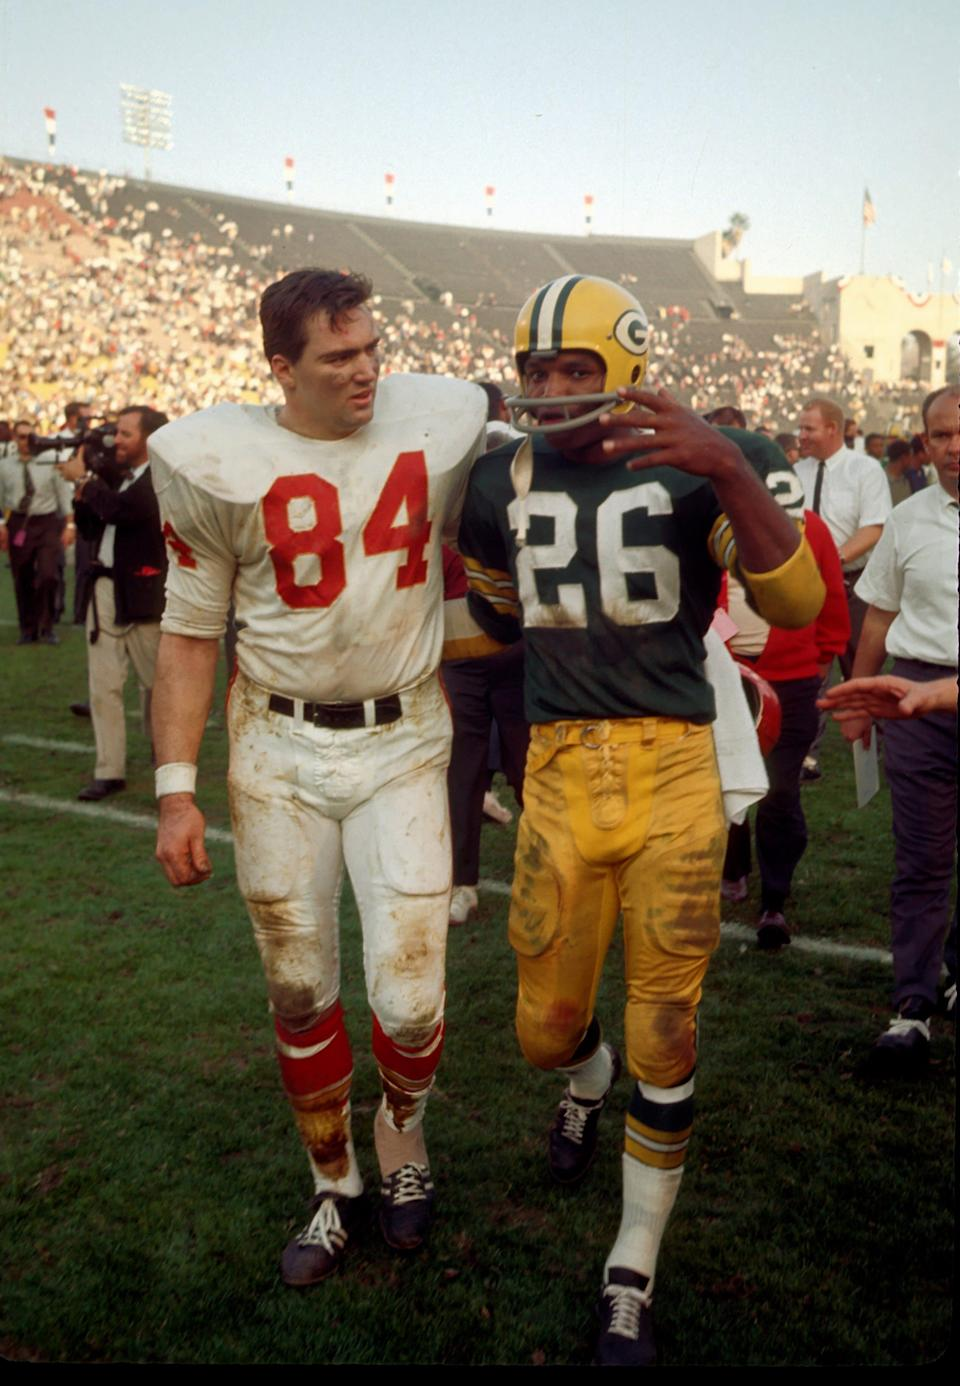 Jan. 15, 1967 in Los Angeles: Kansas City Chiefs tight end Fred Arbanas (84) and Green Bay Packers defensive back Herb Adderley (26) leave the field after the Packers defeated the Chiefs 35-10 in Super Bowl I at the Los Angeles Coliseum.